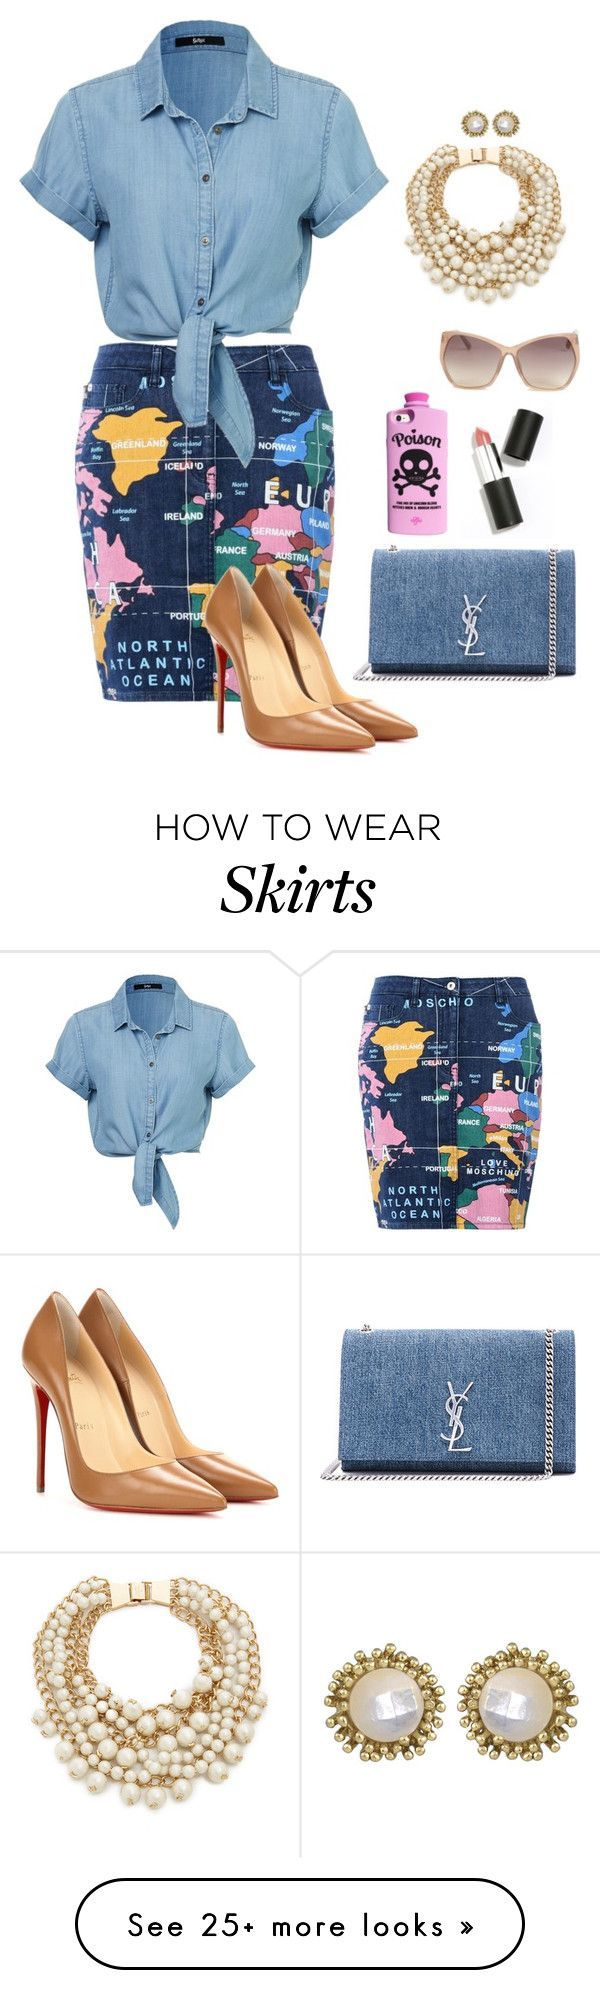 """denim skirt"" by humblechick1 on Polyvore featuring Love Moschino, Christian Louboutin, Yves Saint Laurent, Valfré, Sigma Beauty, Kate Spade, Linda Farrow Luxe, Kendra Scott, women's clothing and women"